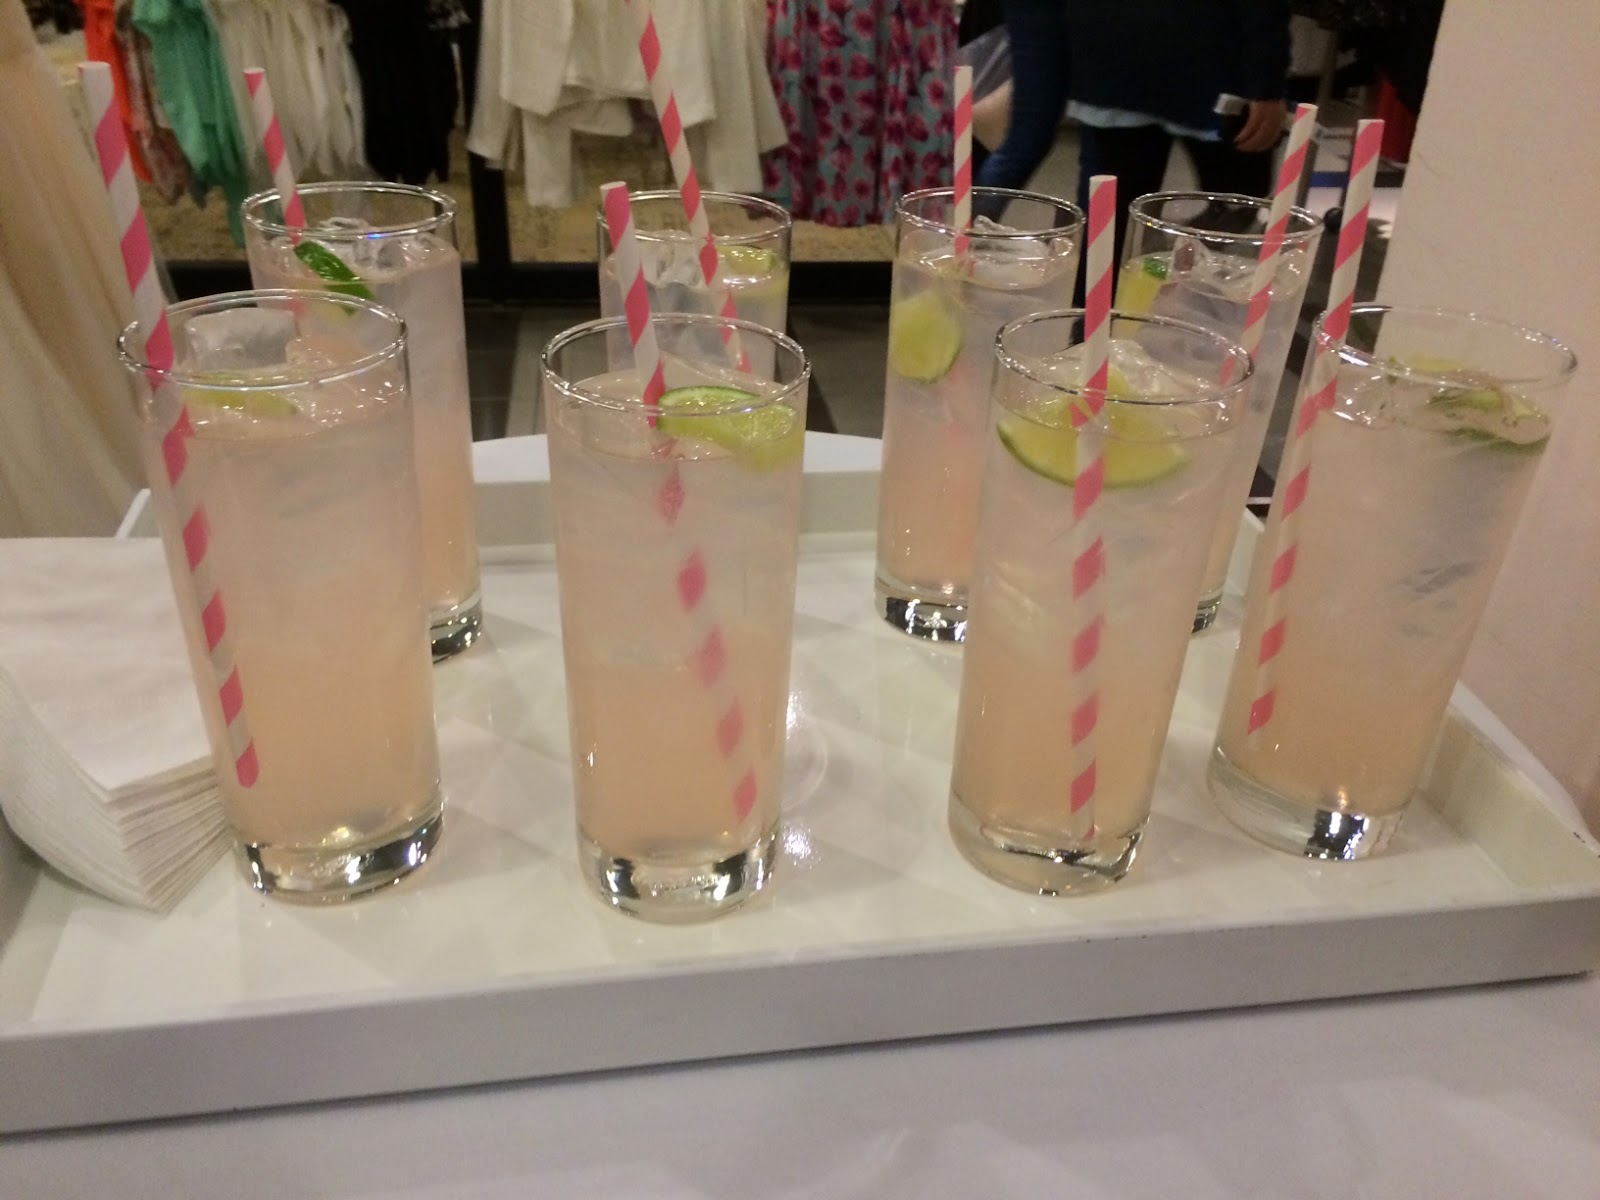 nordstrom montgomery prom party pink lemonade